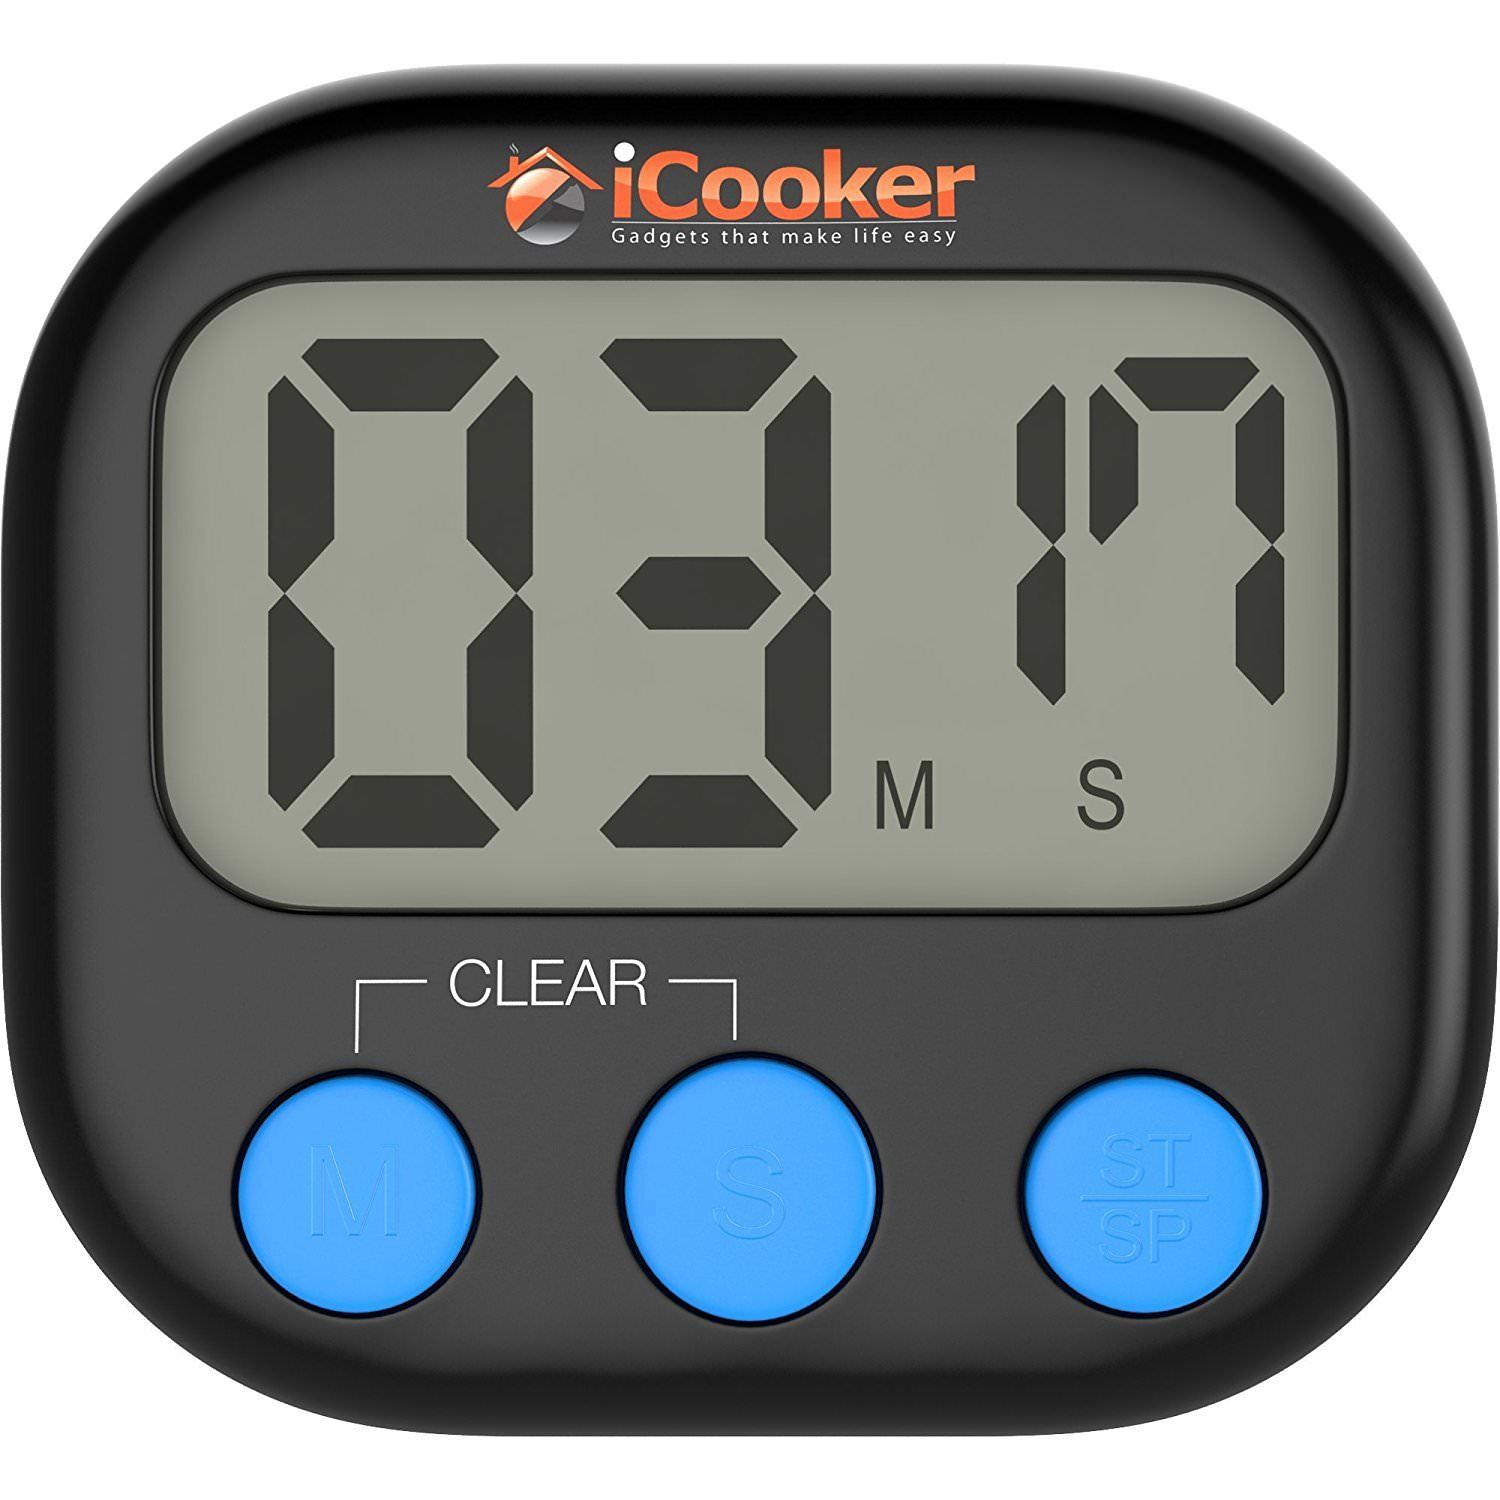 Digital Kitchen Timer [Magnetic Back] Large LCD Cooking and Baking  W/Count-Down-Classroom Sports Counter Alarm Black